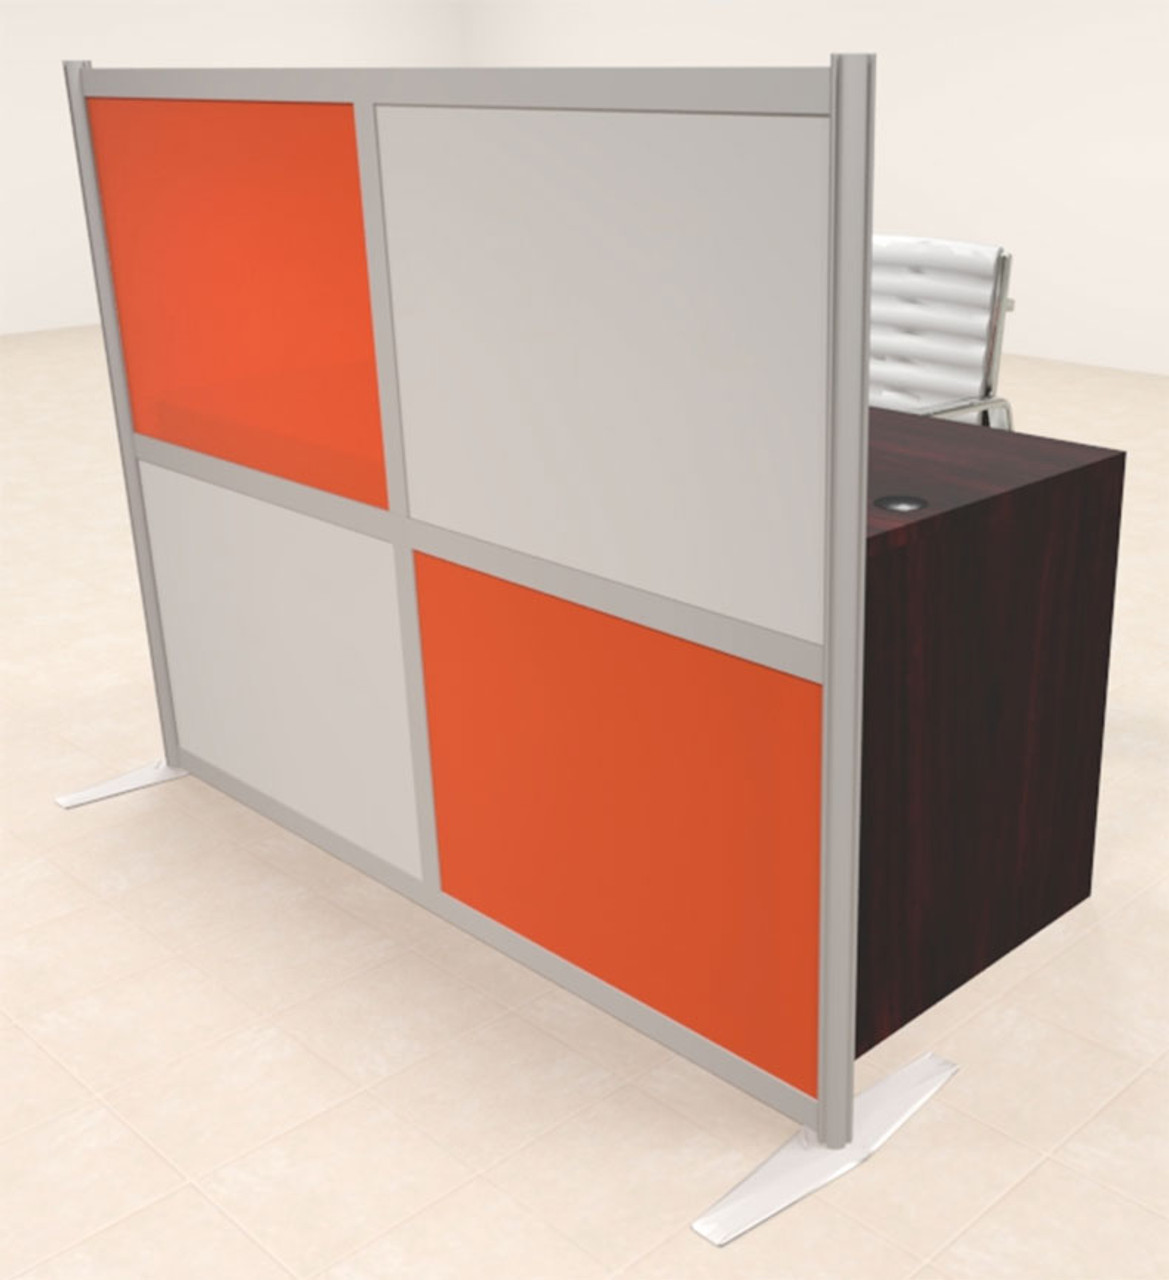 One Person Workstation w/Acrylic Aluminum Privacy Panel, #OT-SUL-HPO135